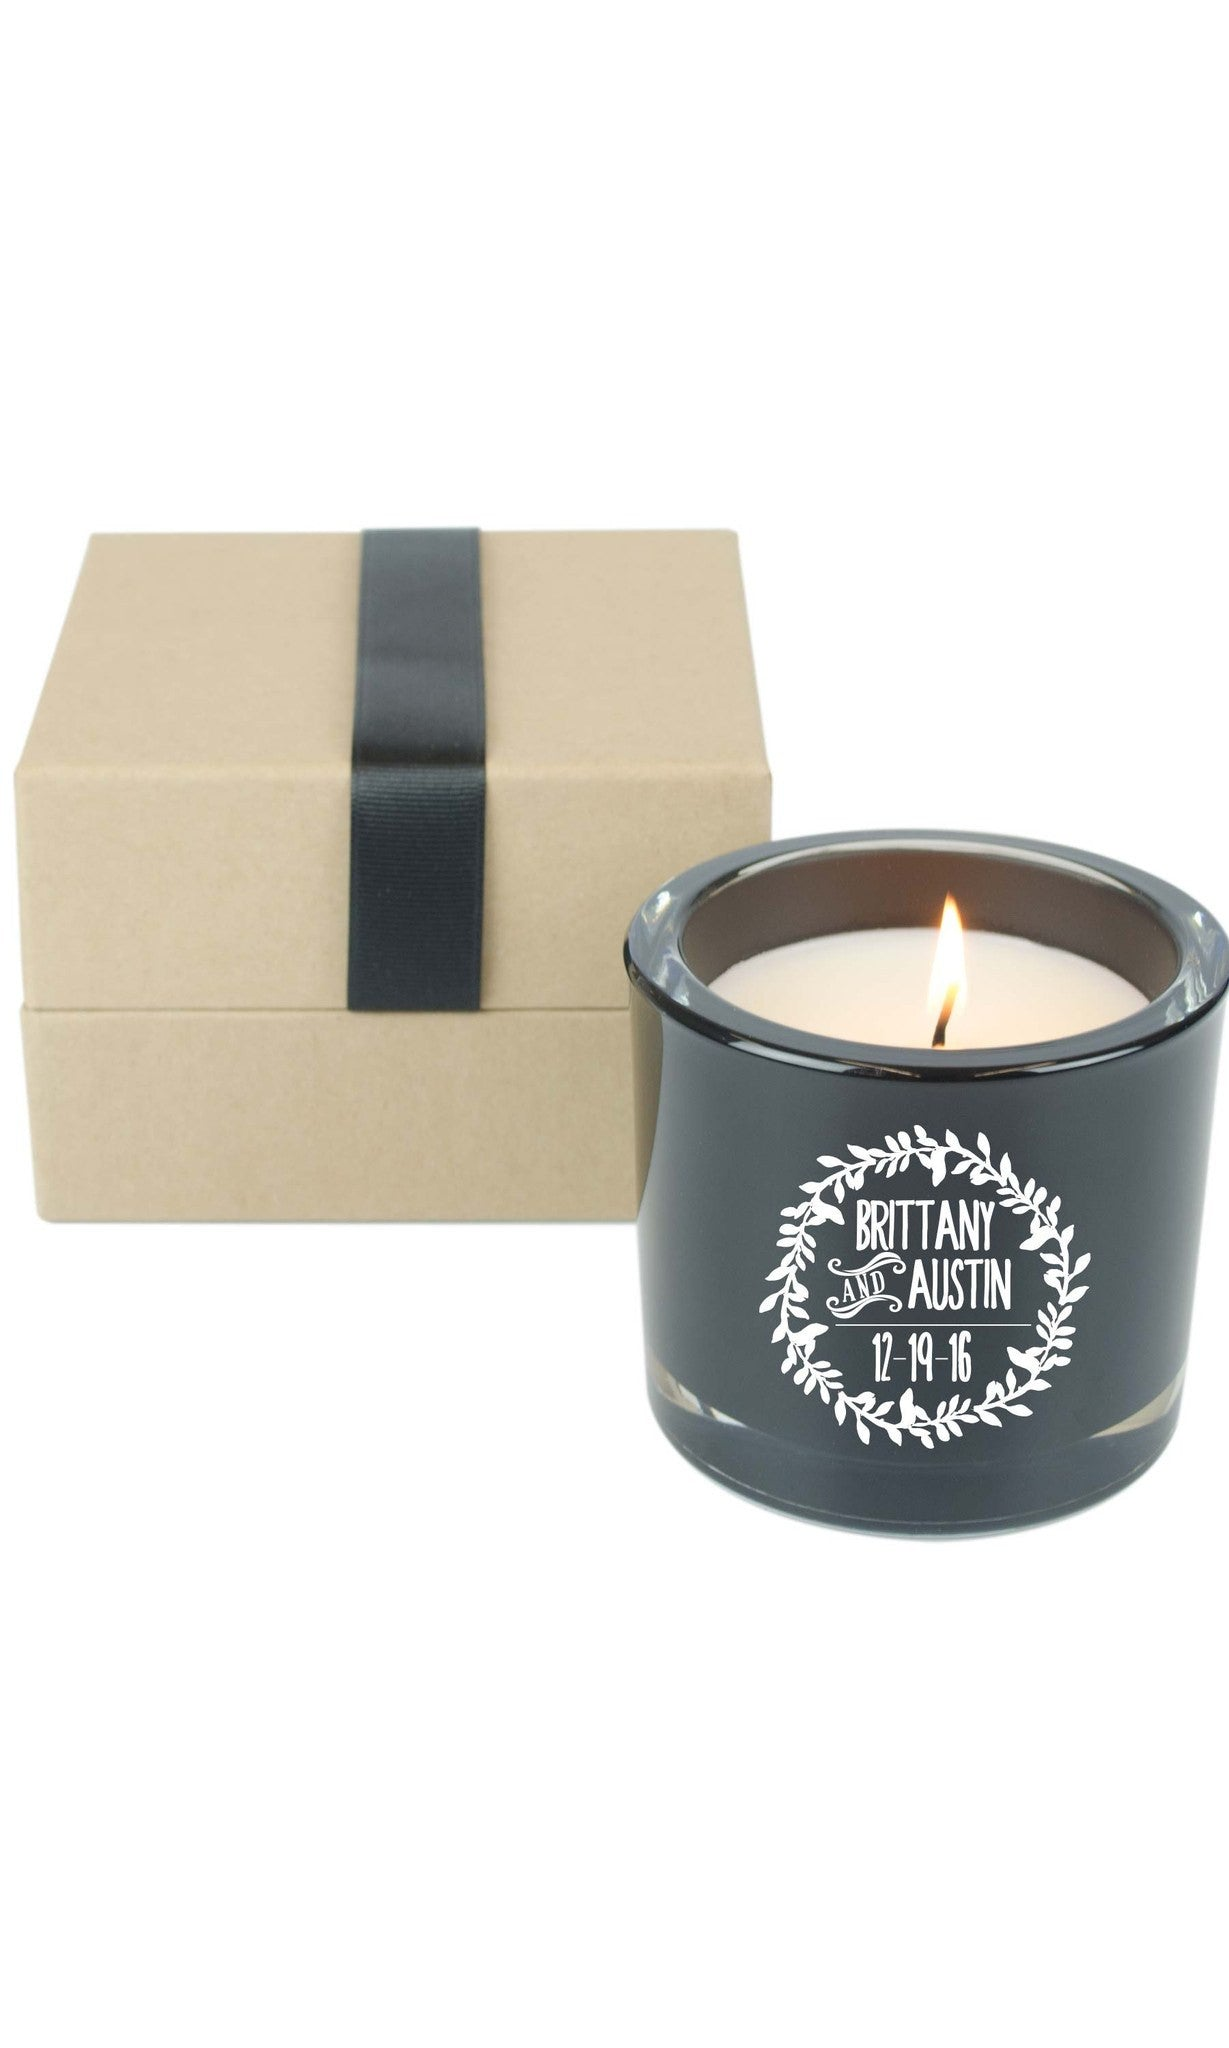 6oz. Gift Candle - Lover's Wreath  (Case of 12) - WeddingCandles.com